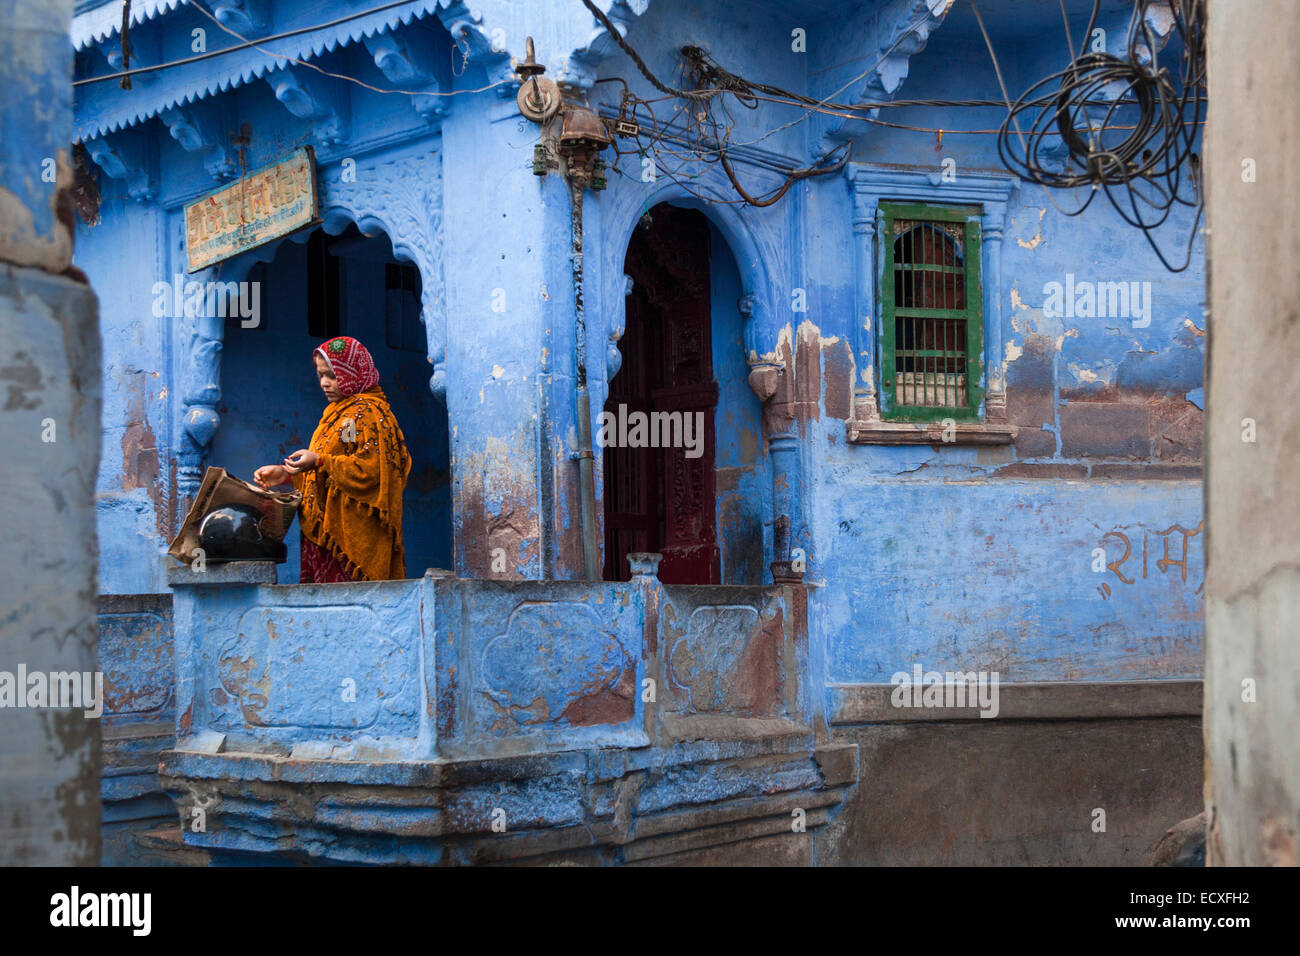 Indian woman standing on her terrace in Jodhpur, India's 'Blue city' - Stock Image